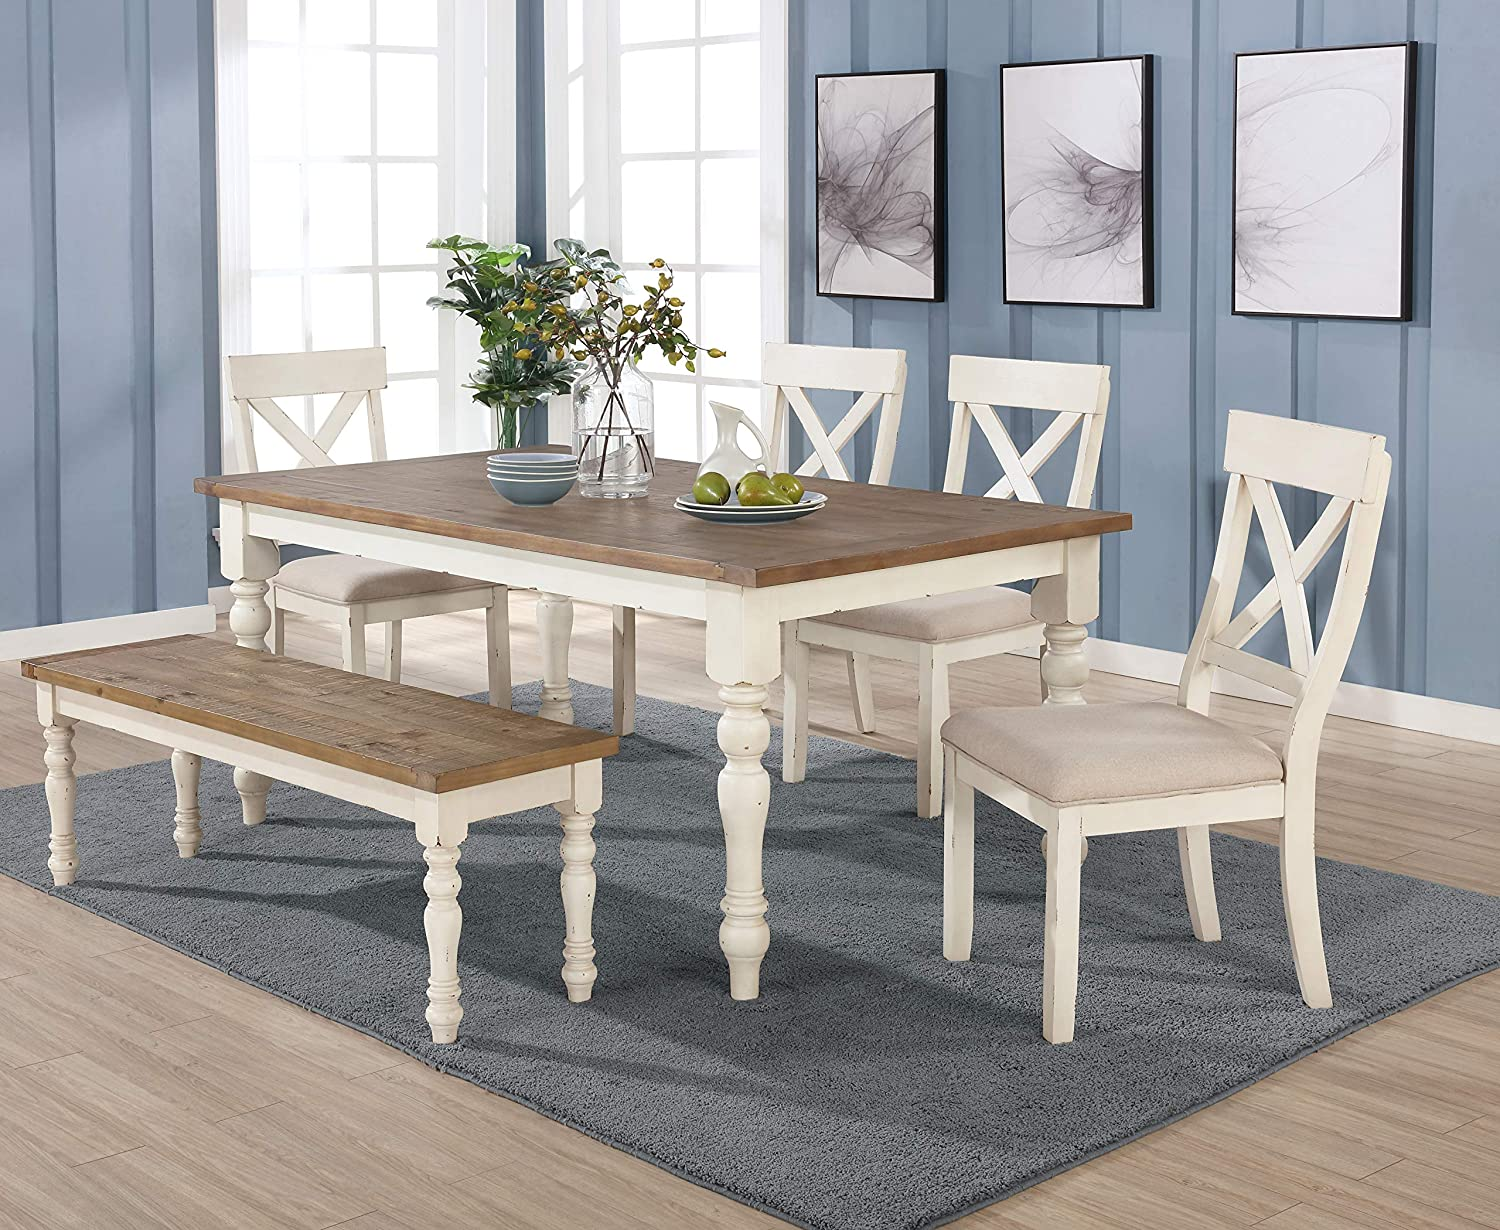 Roundhill Furniture Prato 9 Piece Dining Table Set with Cross Back Chairs  and Bench, Antique White and Distressed Oak